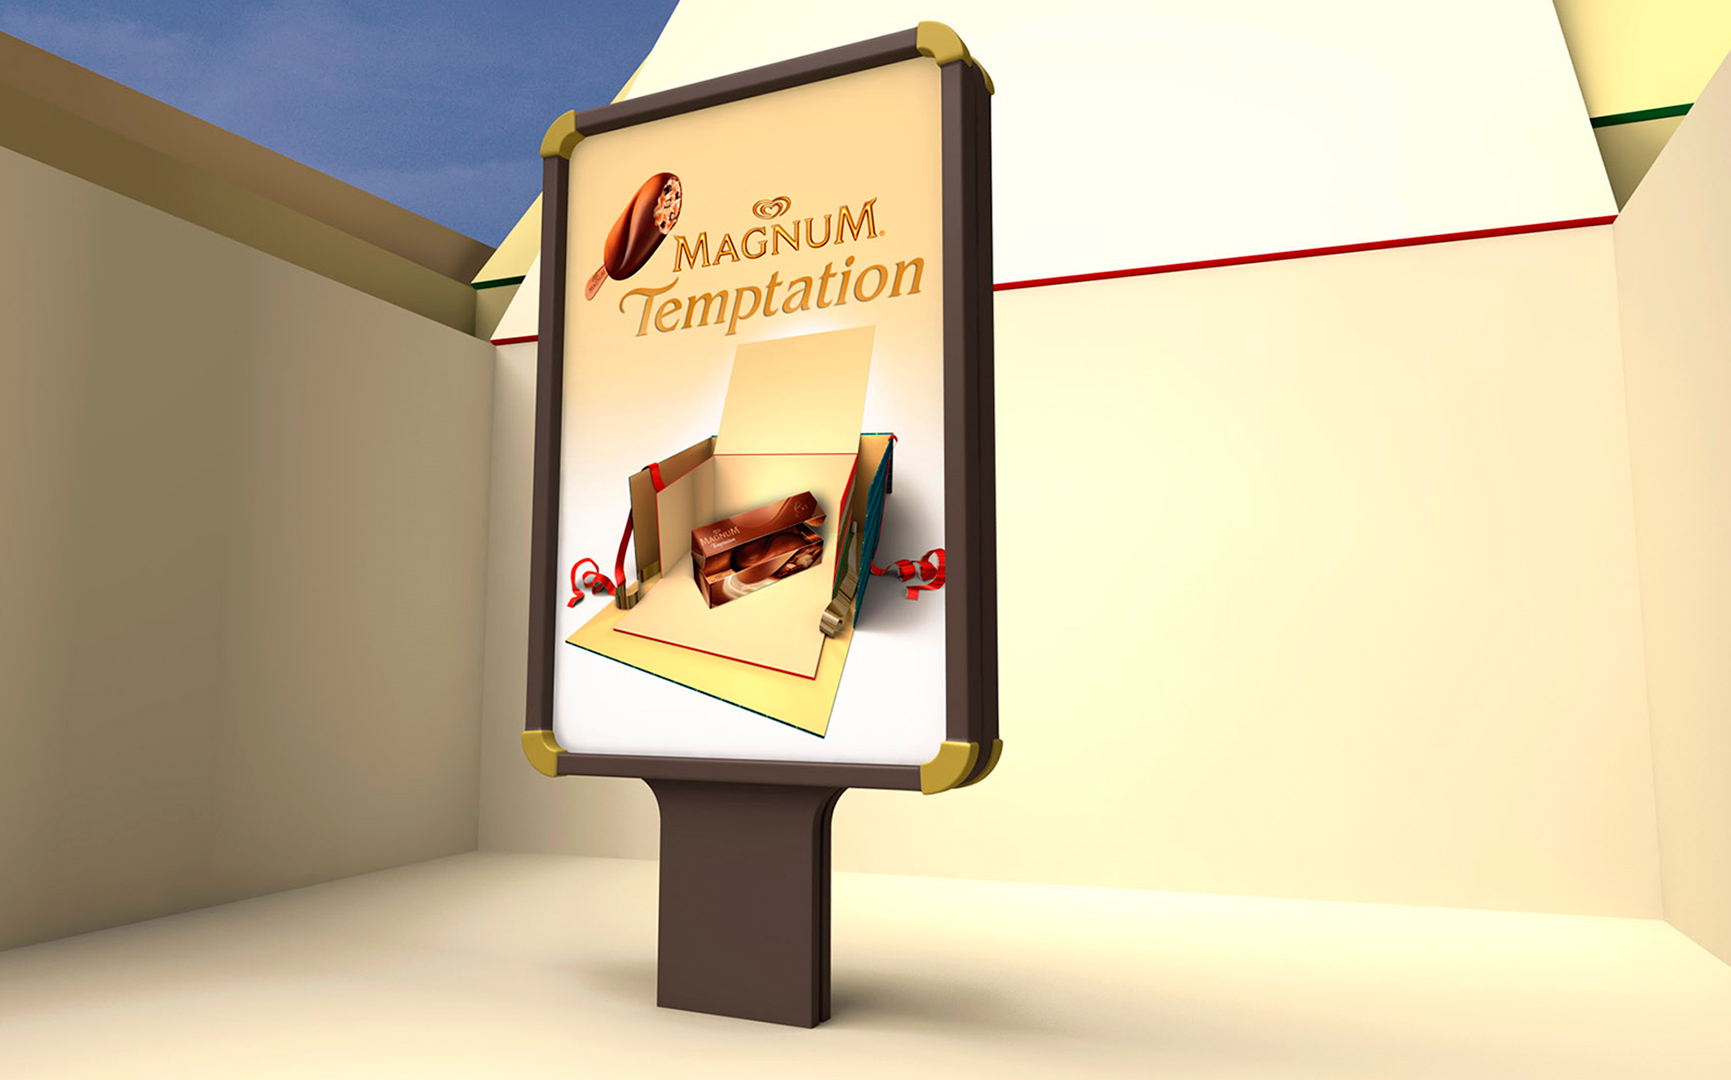 Magnum / Lola-mullenlowem Madrid / Stand design / 3D, Photo retouching and illustration